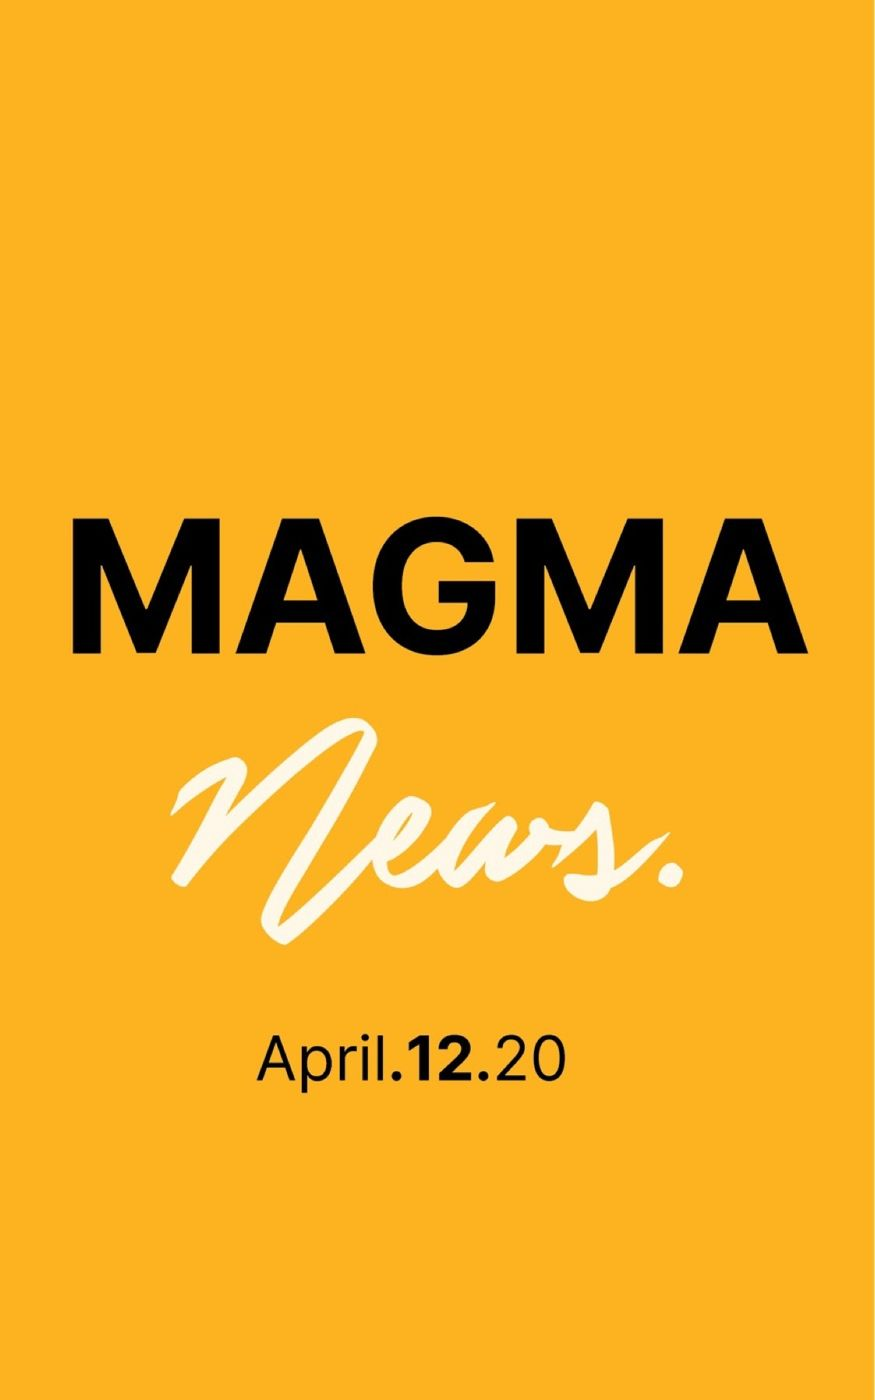 Magma News April 12, 2020  -The Strangest Easter. -How Covid-19 affects those who are pregnant. -What will happen to America's Housing Market? -How Truthful has China Been? -What happens with NFL draft if there's no season? -The NBA Adapts. -Is Jeff Bezos trying to buy the US Postal Service? -SNL during quarantine is pure gold. -Apple & Google Unite.